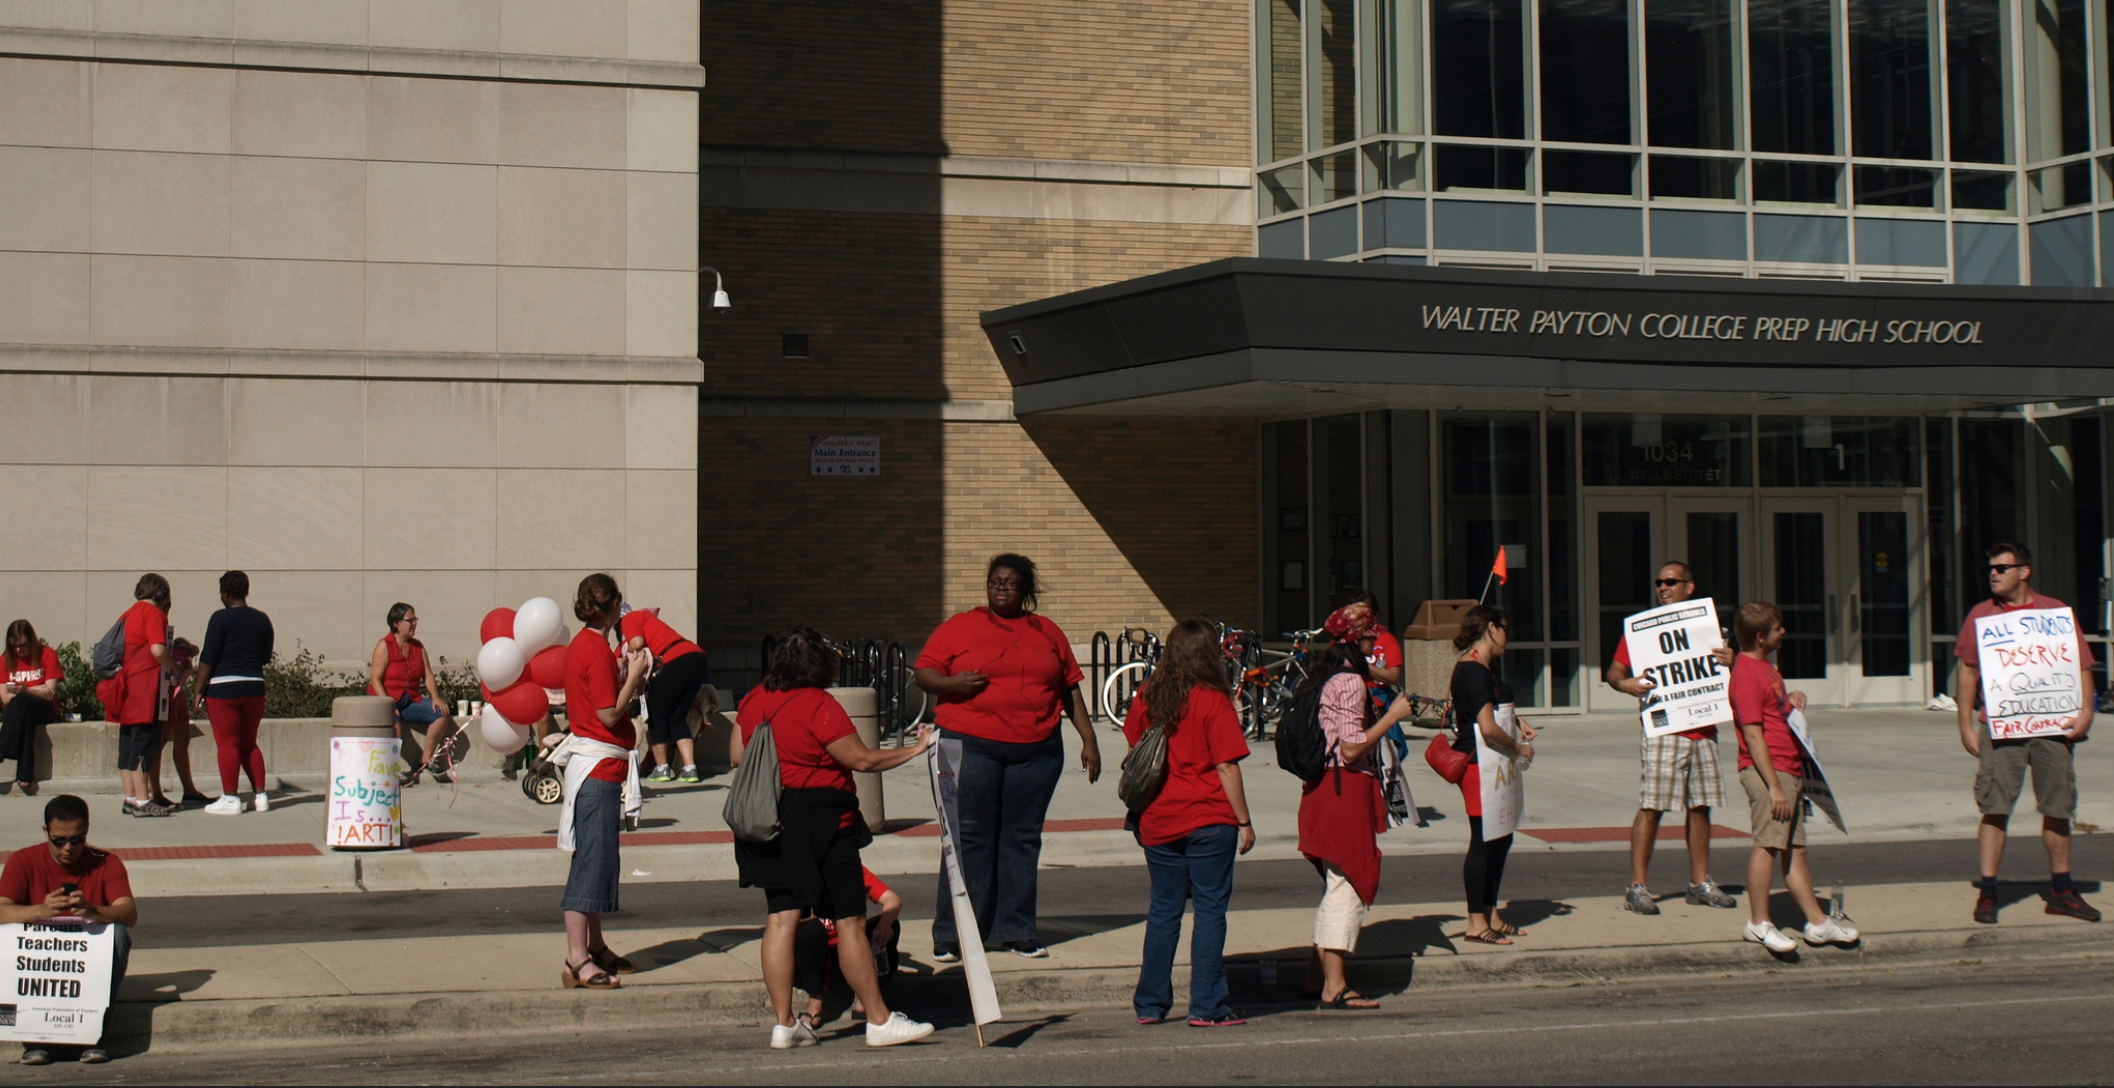 Chicago Public School teachers protest in front of Walter Payton College Prep, 1034 N. Wells St. It cost the equivalent of $44 million to build in 2000.